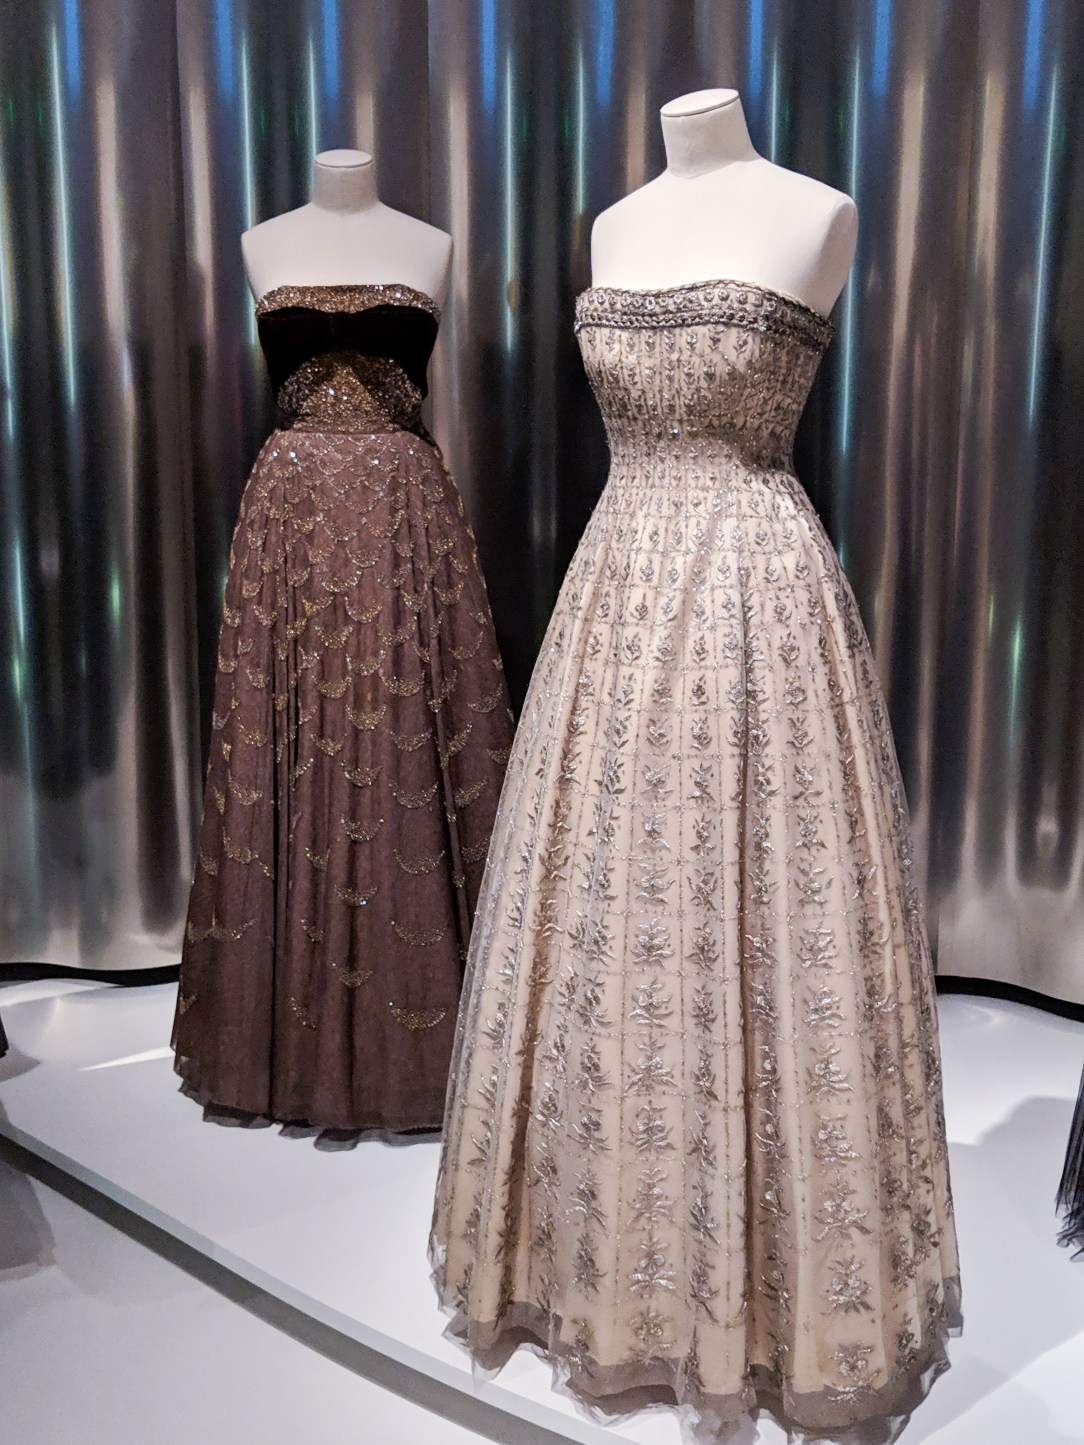 Dior gowns, Dior fashion, haute couture